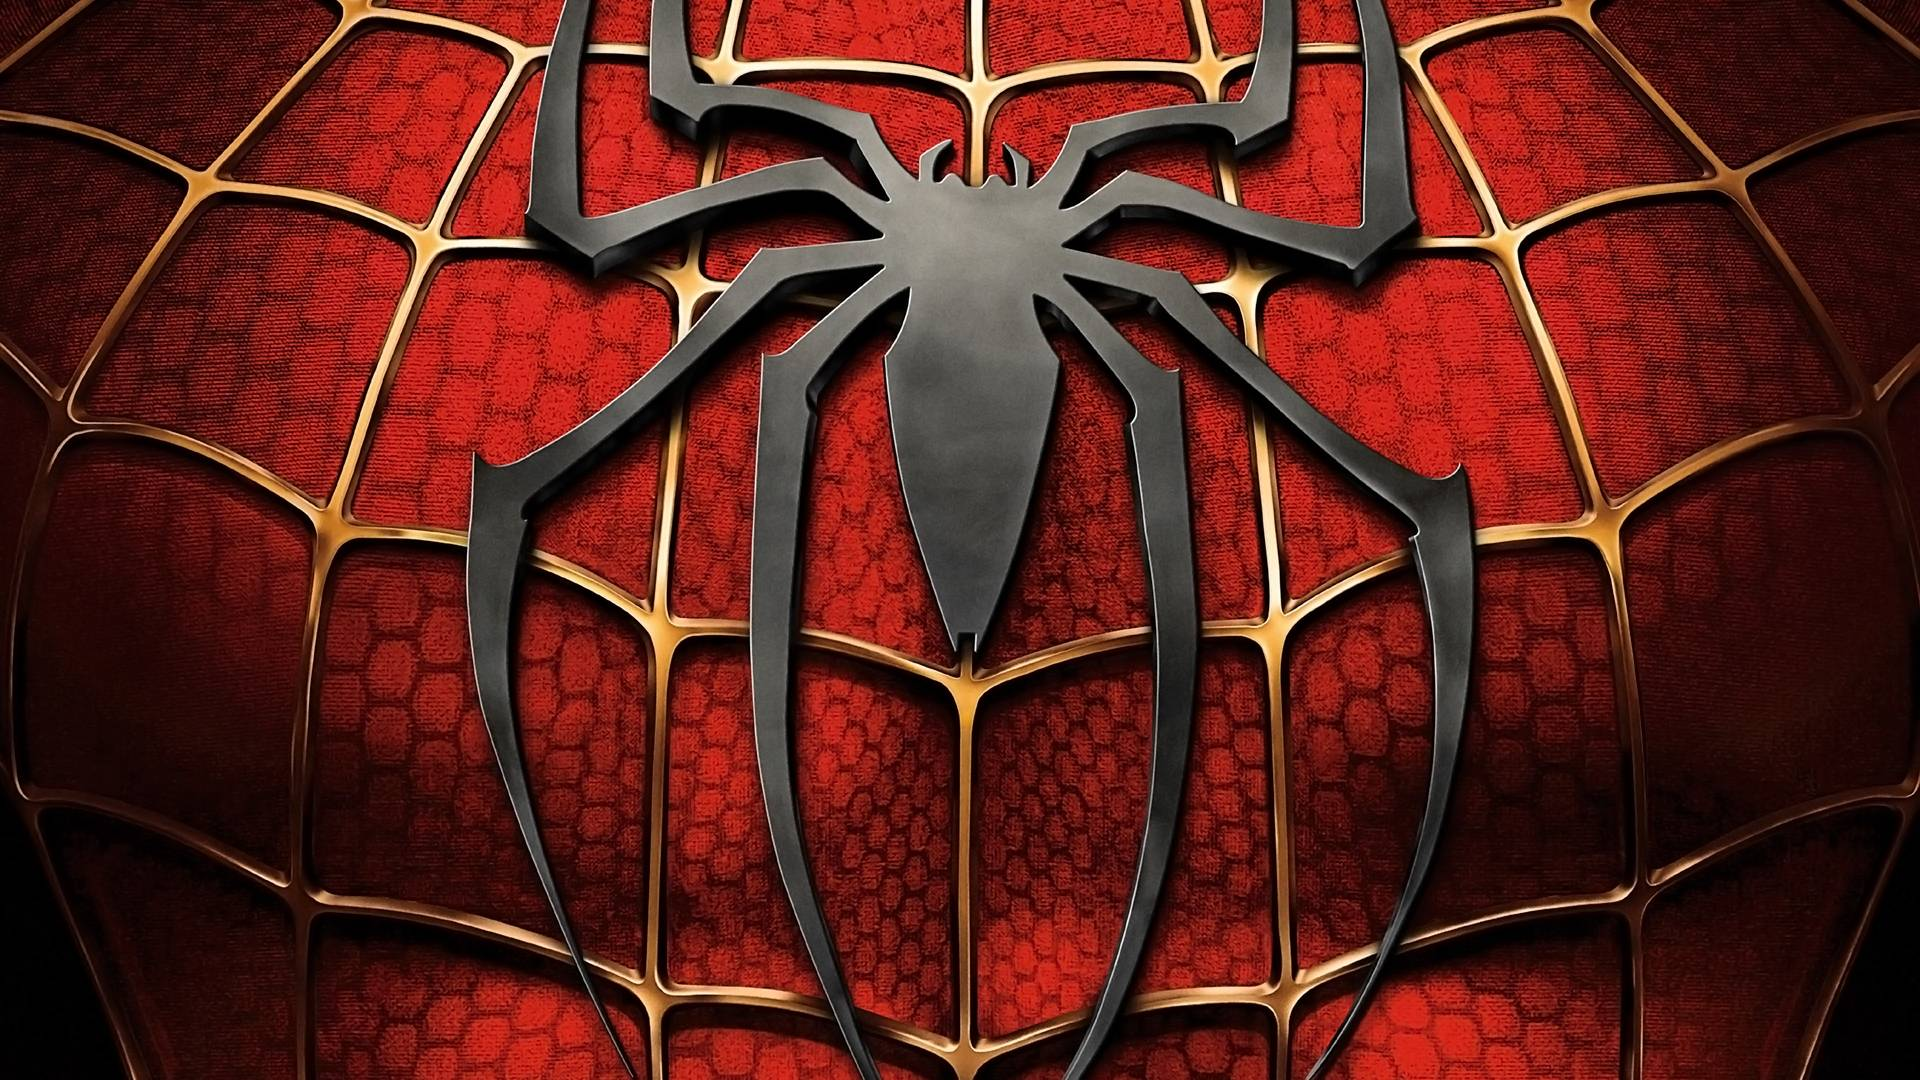 Best ideas about Spiderman Wallpapers on Pinterest  Camisas 1920x1080